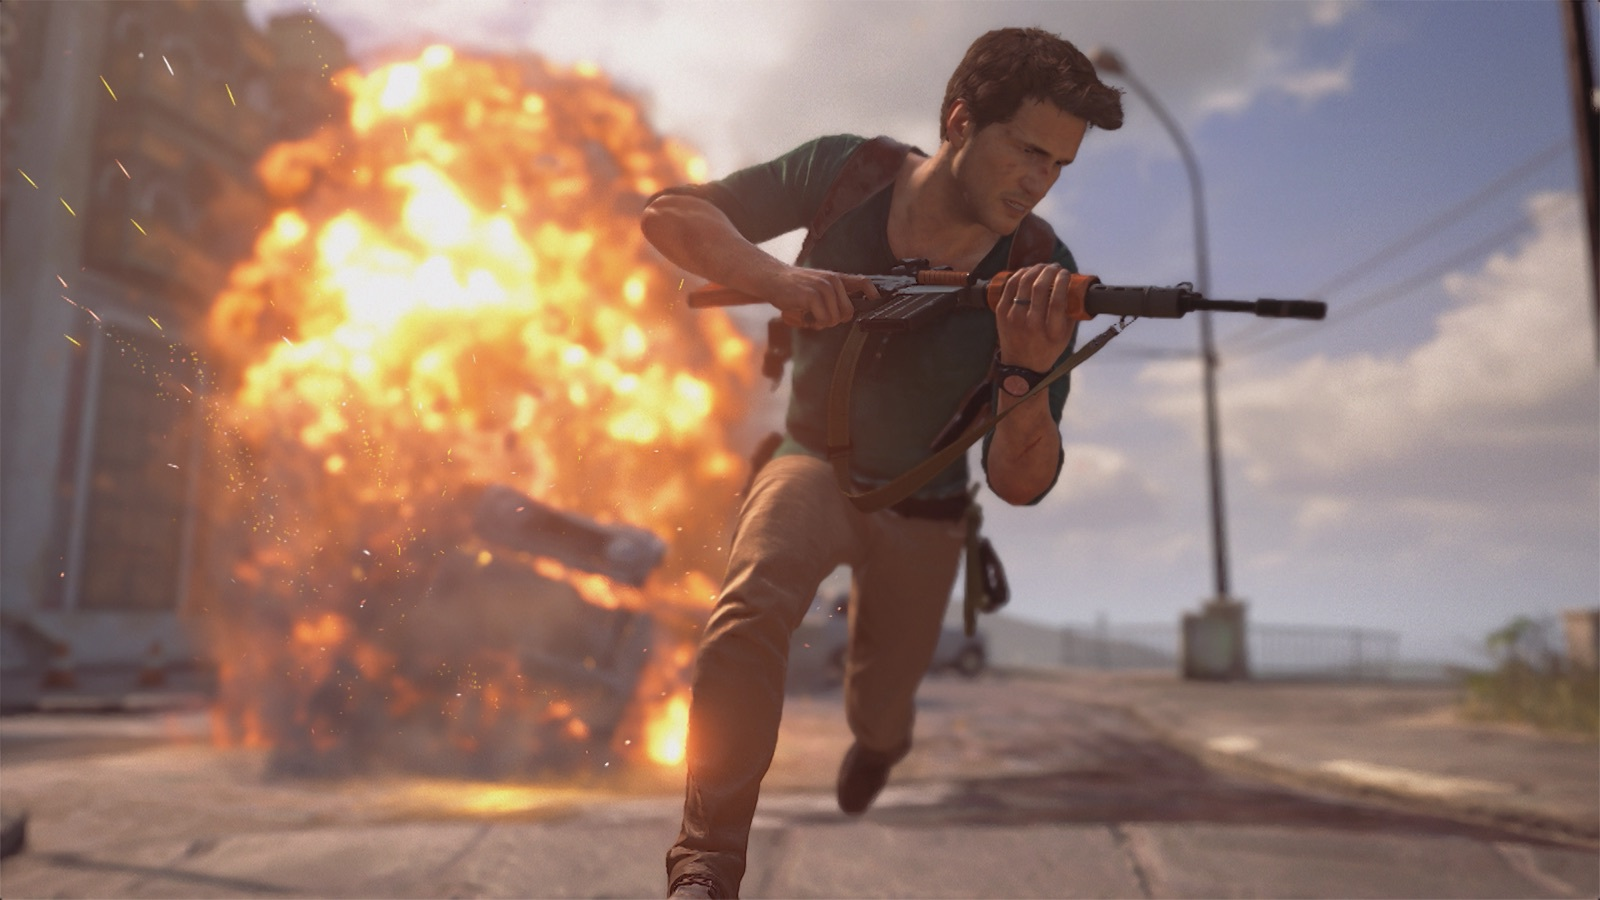 Uncharted 4 Action Packed Gameplay Trailer Released